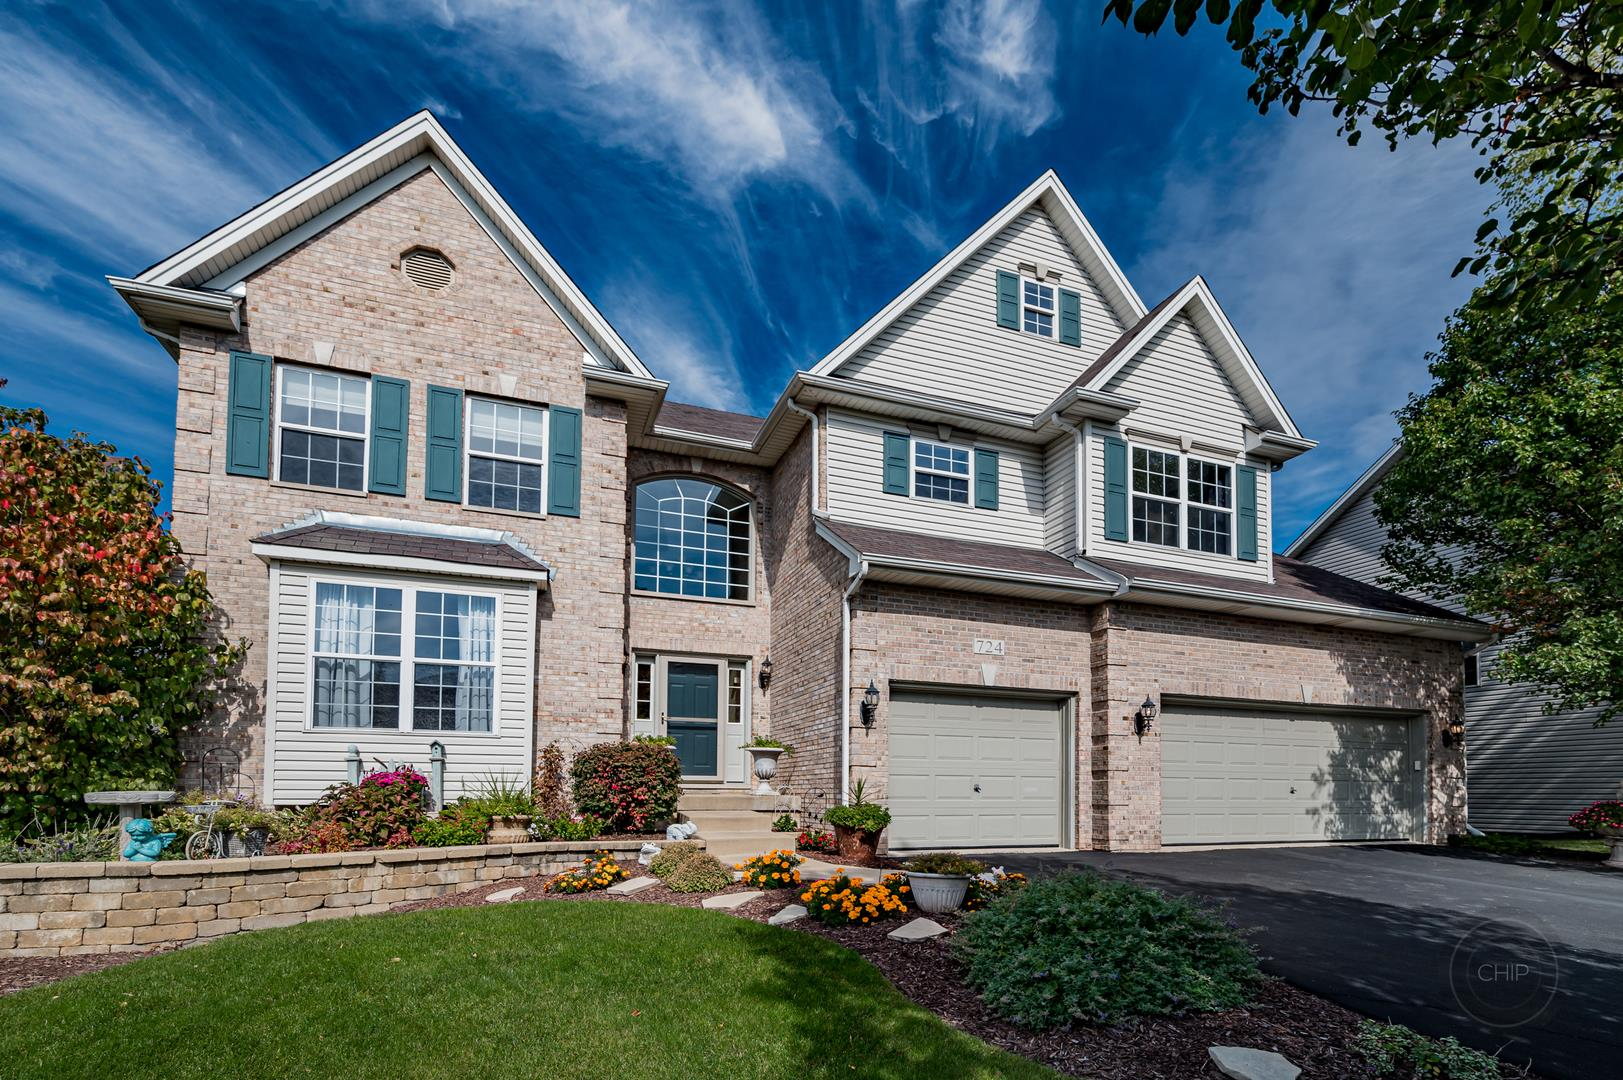 724 Doral Lane, North Aurora, IL 60542 - #: 10921560